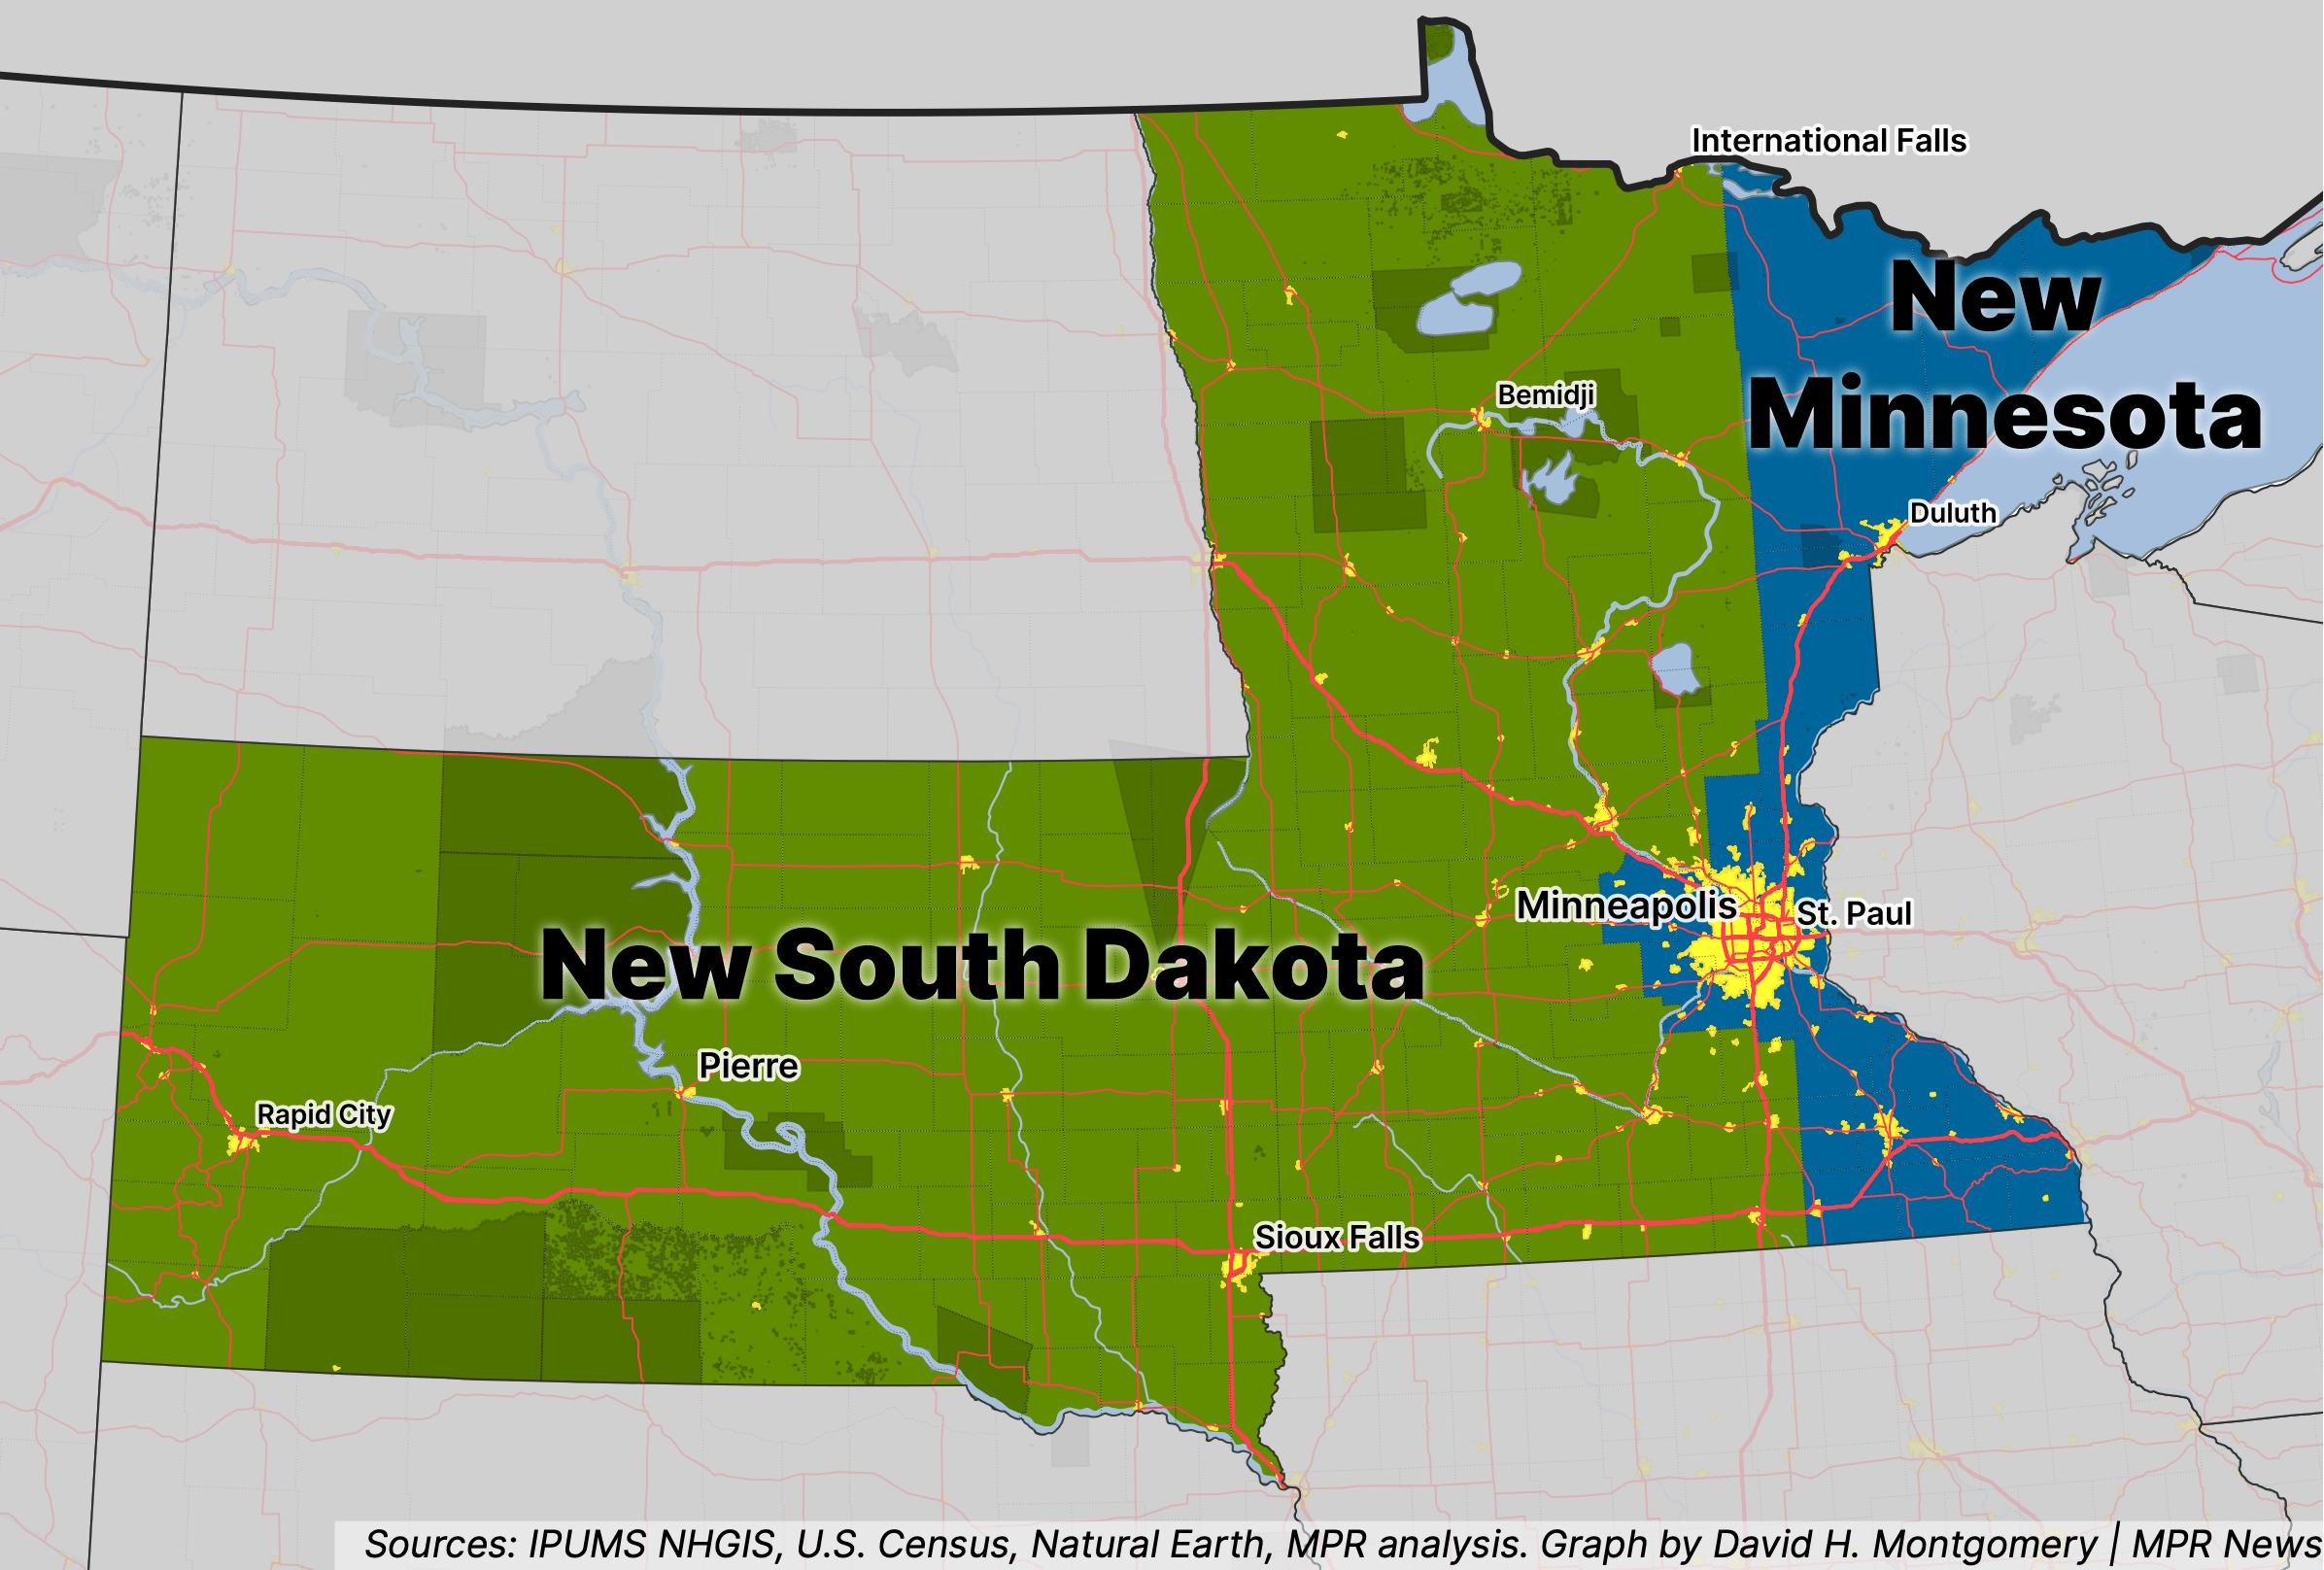 Map of a scenario where western Minnesota seceded and joined South Dakota